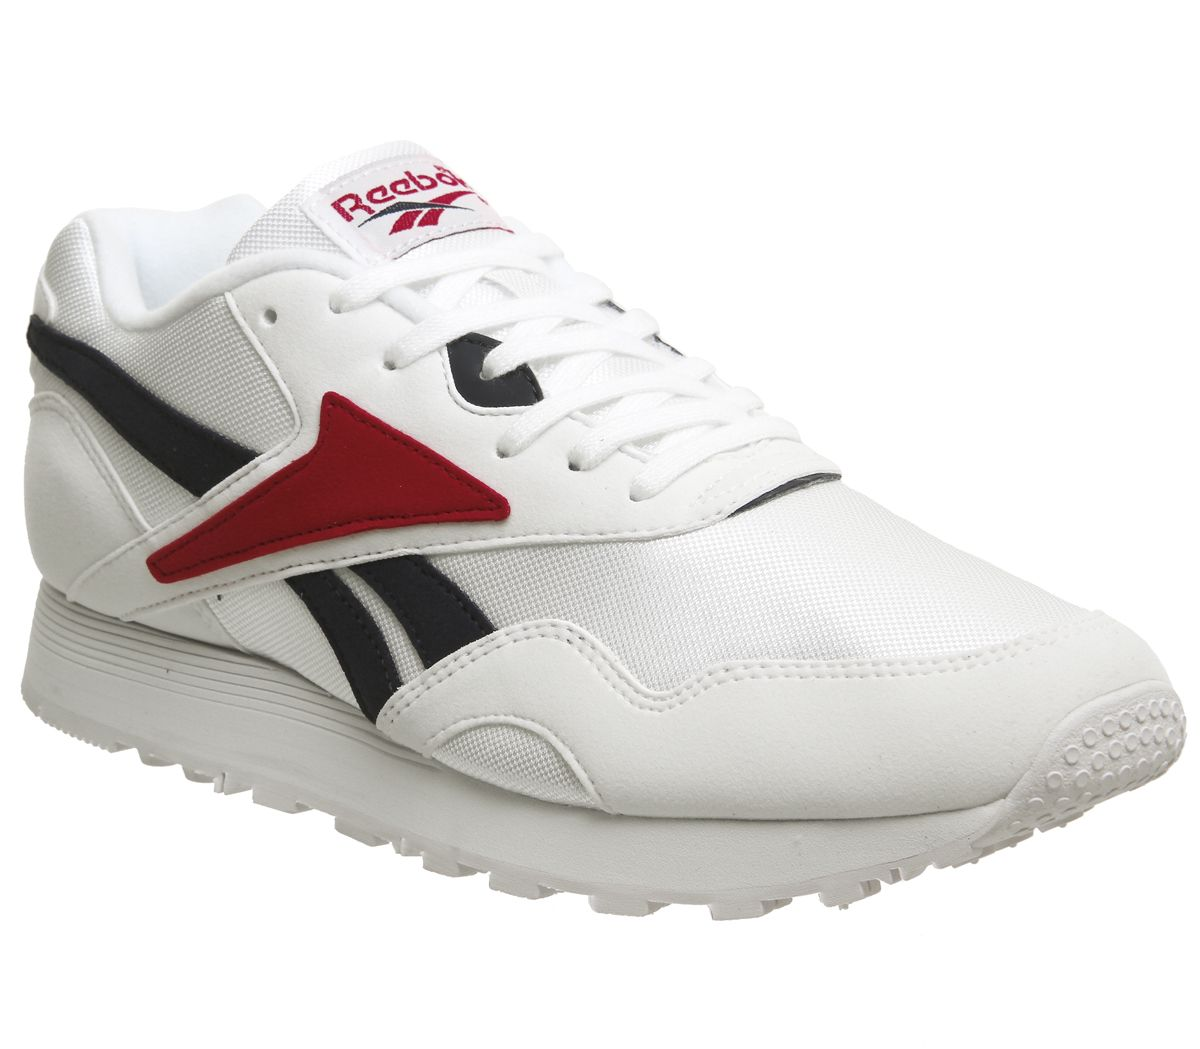 5963ec4abe2 Reebok Rapide Trainers Og White Col Navy Excellent Red - Hers trainers